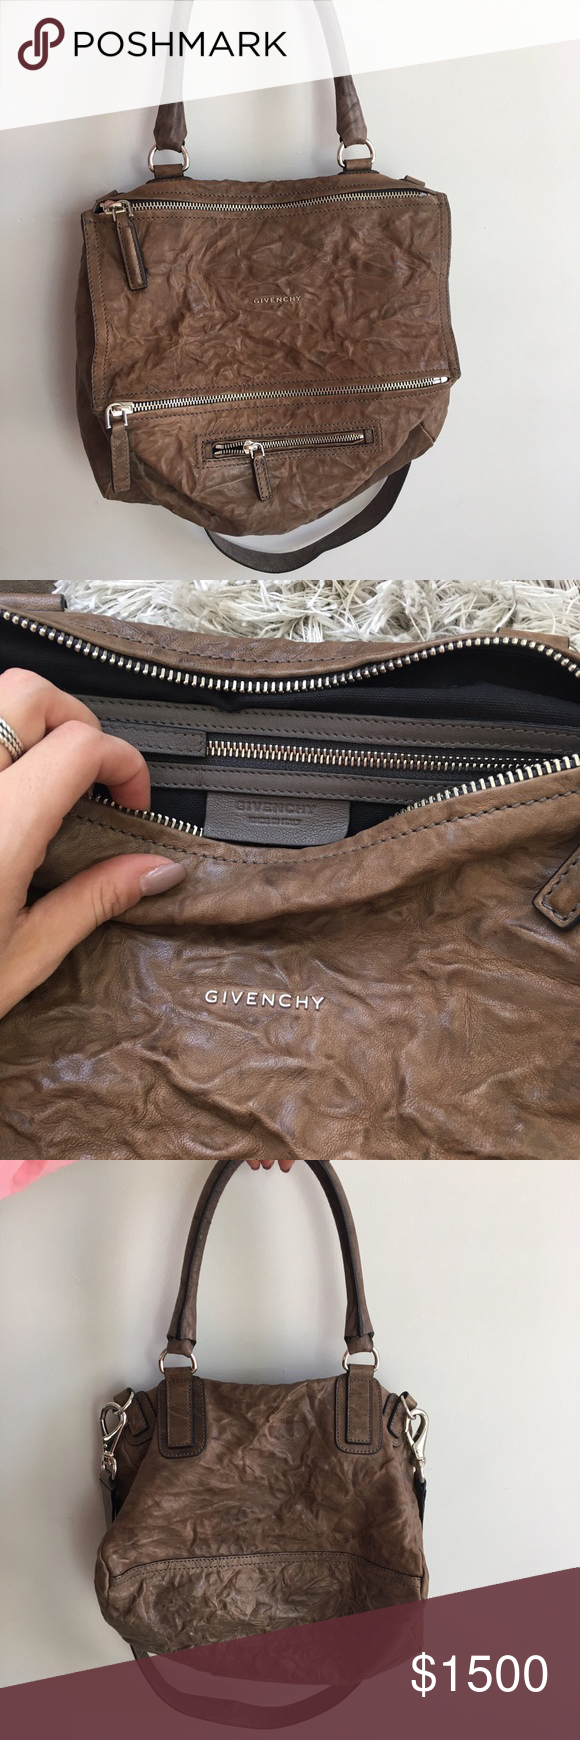 f728fba9bc Givenchy Medium Pepe Pandora Leather Shoulder Bag Medium wrinkled leather Givenchy  Pandora bag. This bag is sold out almost everywhere and has barely any ...